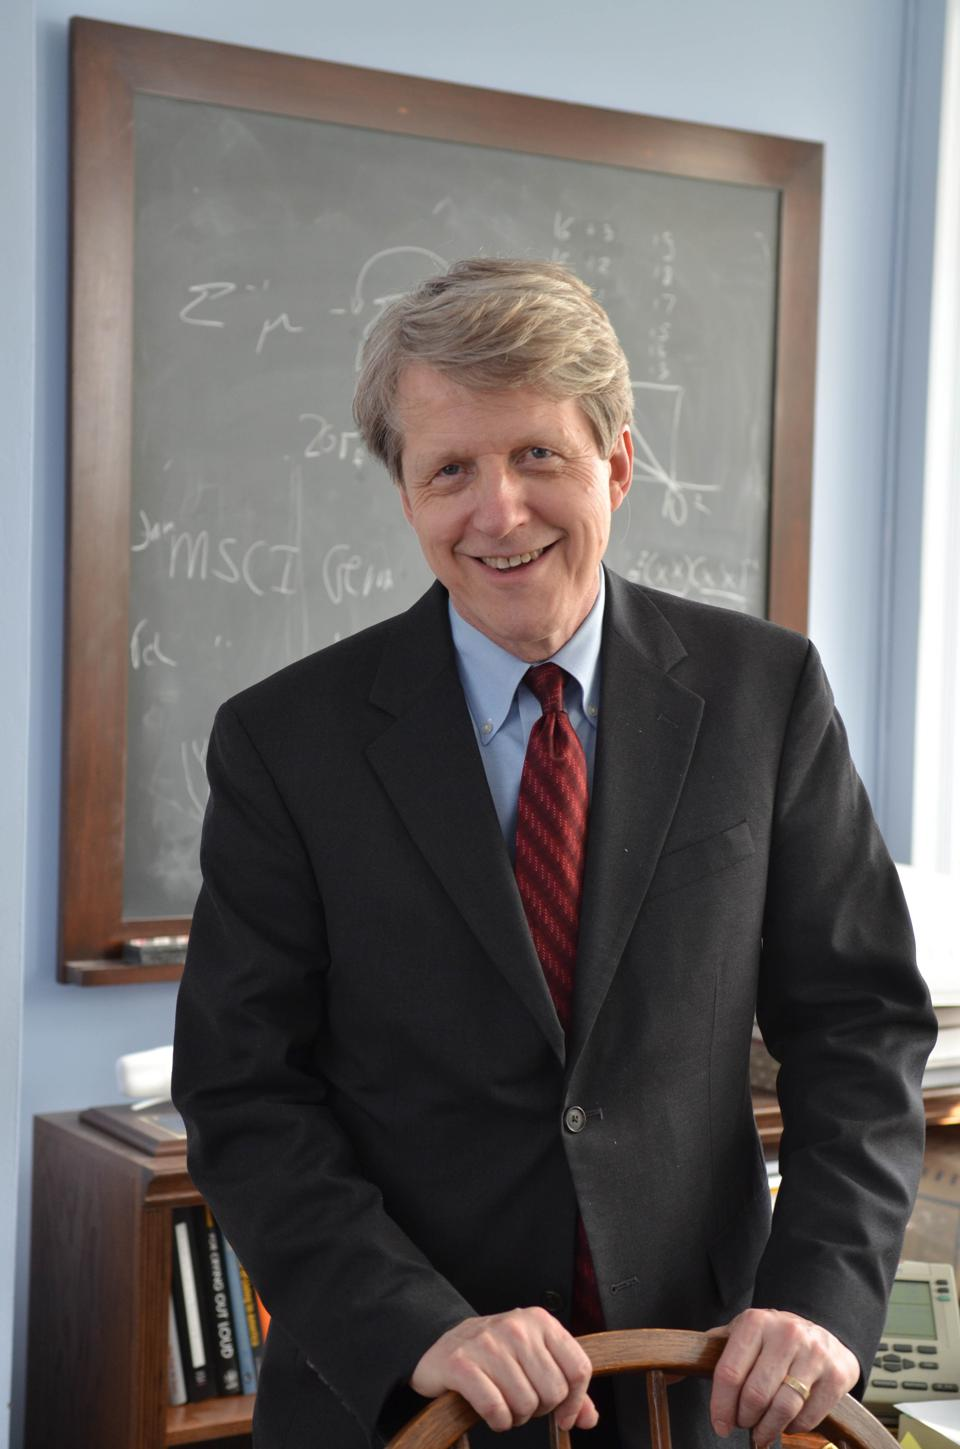 AI, The Great Depression And Satoshi Nakamoto: Robert Shiller's Narrative Economics Is A Cautionary Tale For Our Times